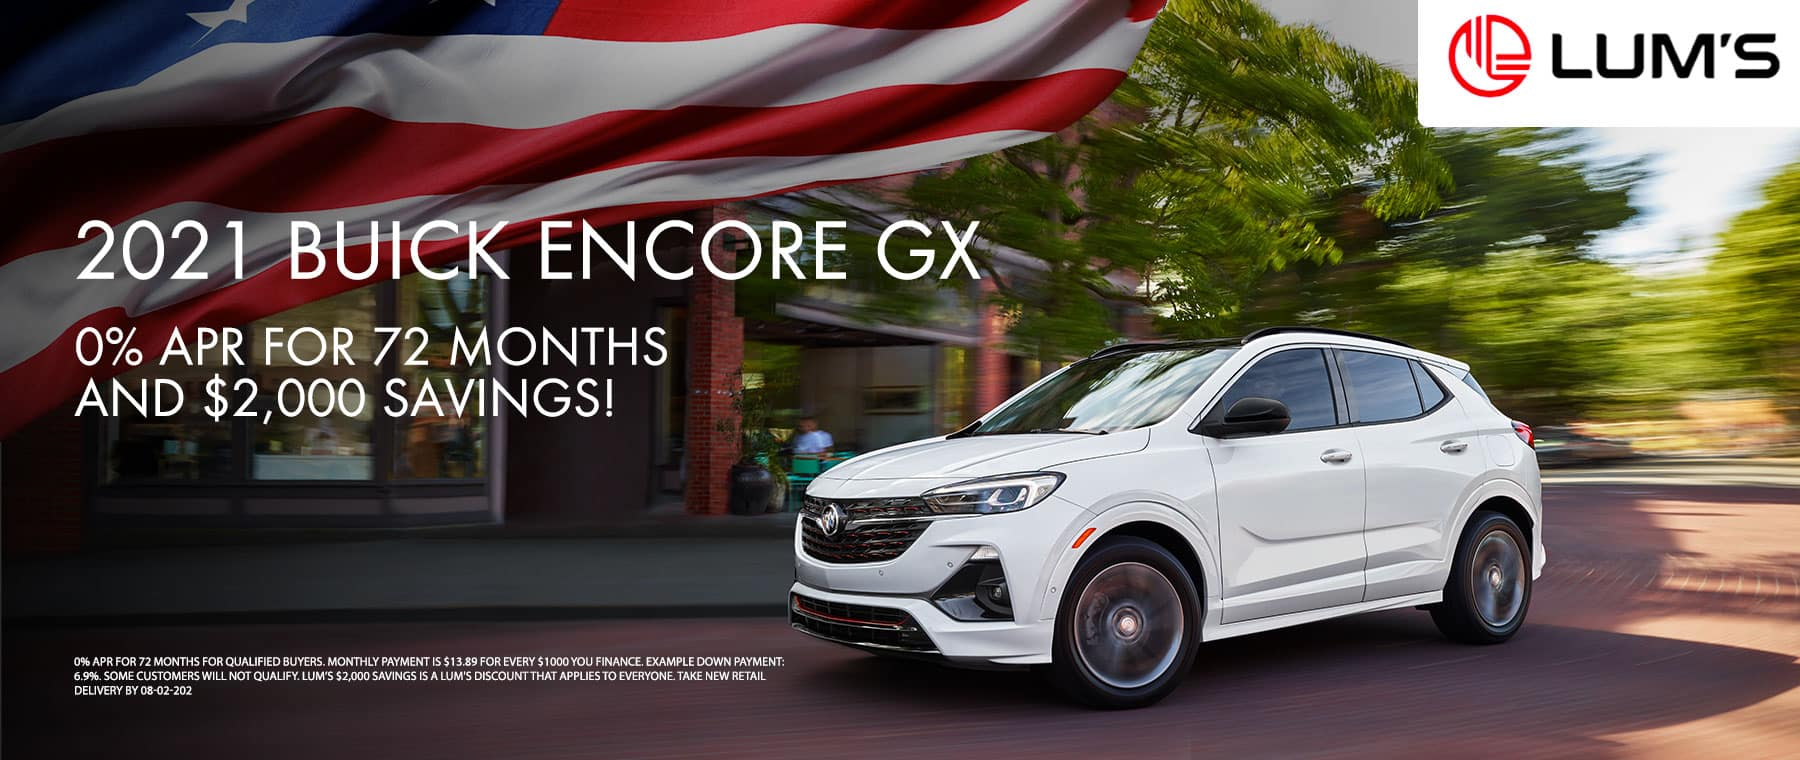 2021 Buick Encore GX 0% APR for 72 months and $2,000 Savings!